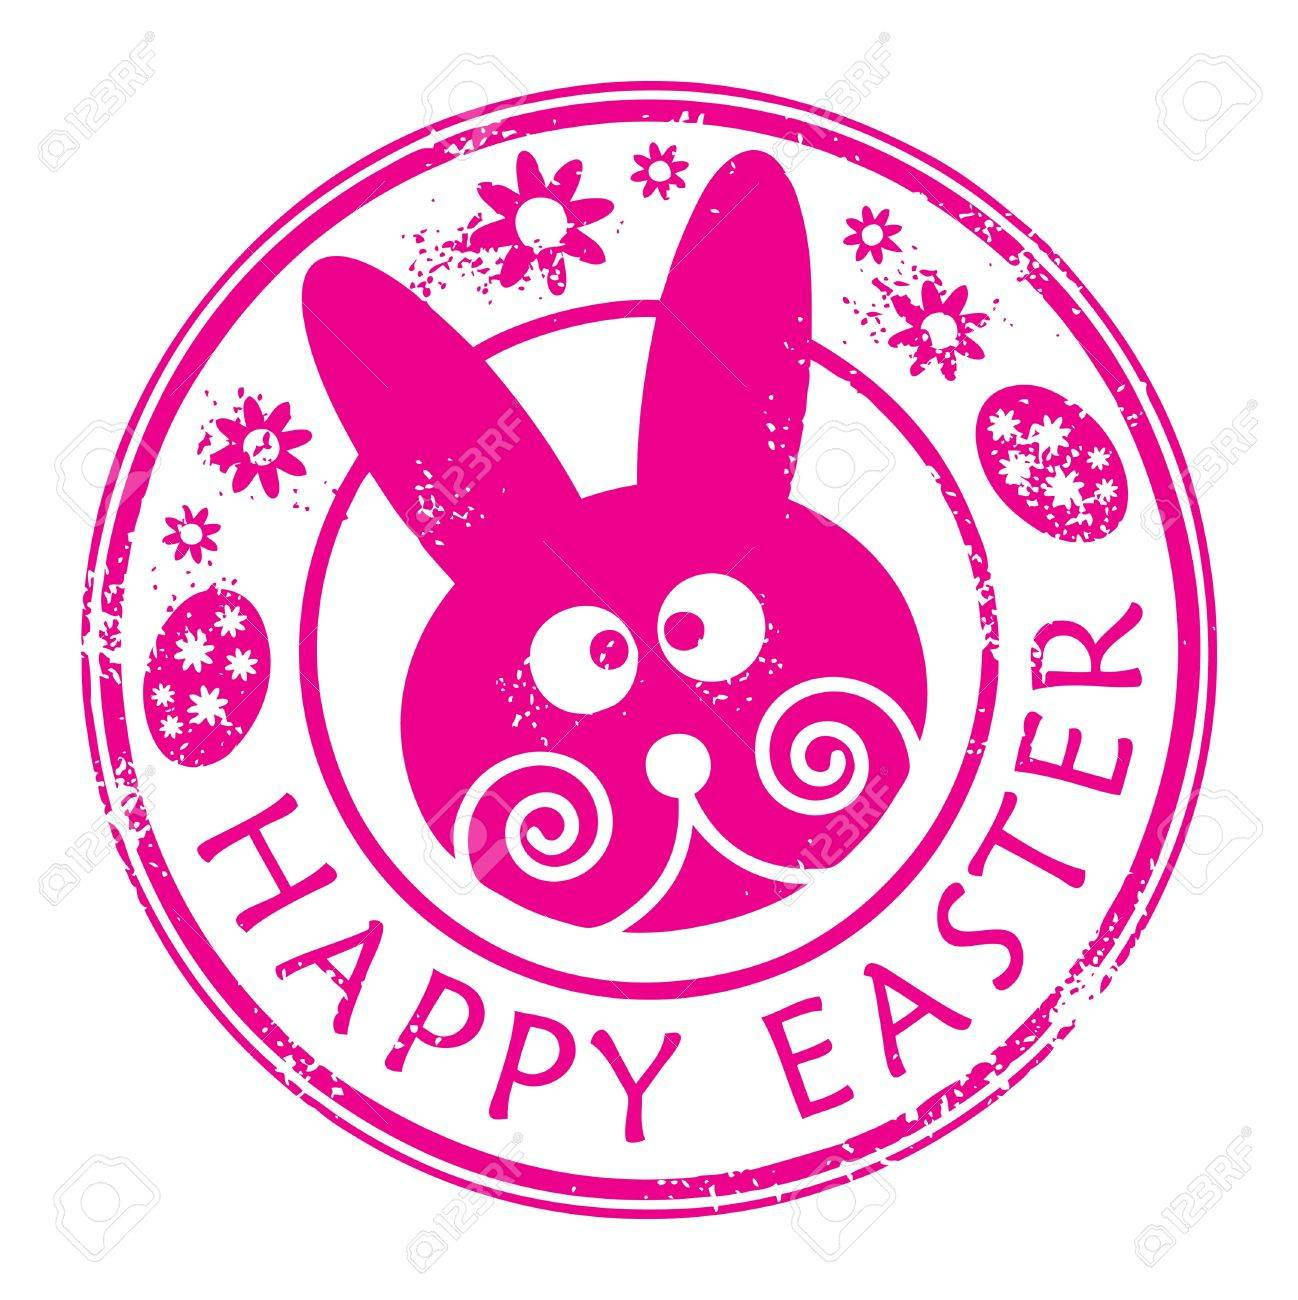 Stamp With Bunny And The Text Happy Easter Written Inside Stock Vector